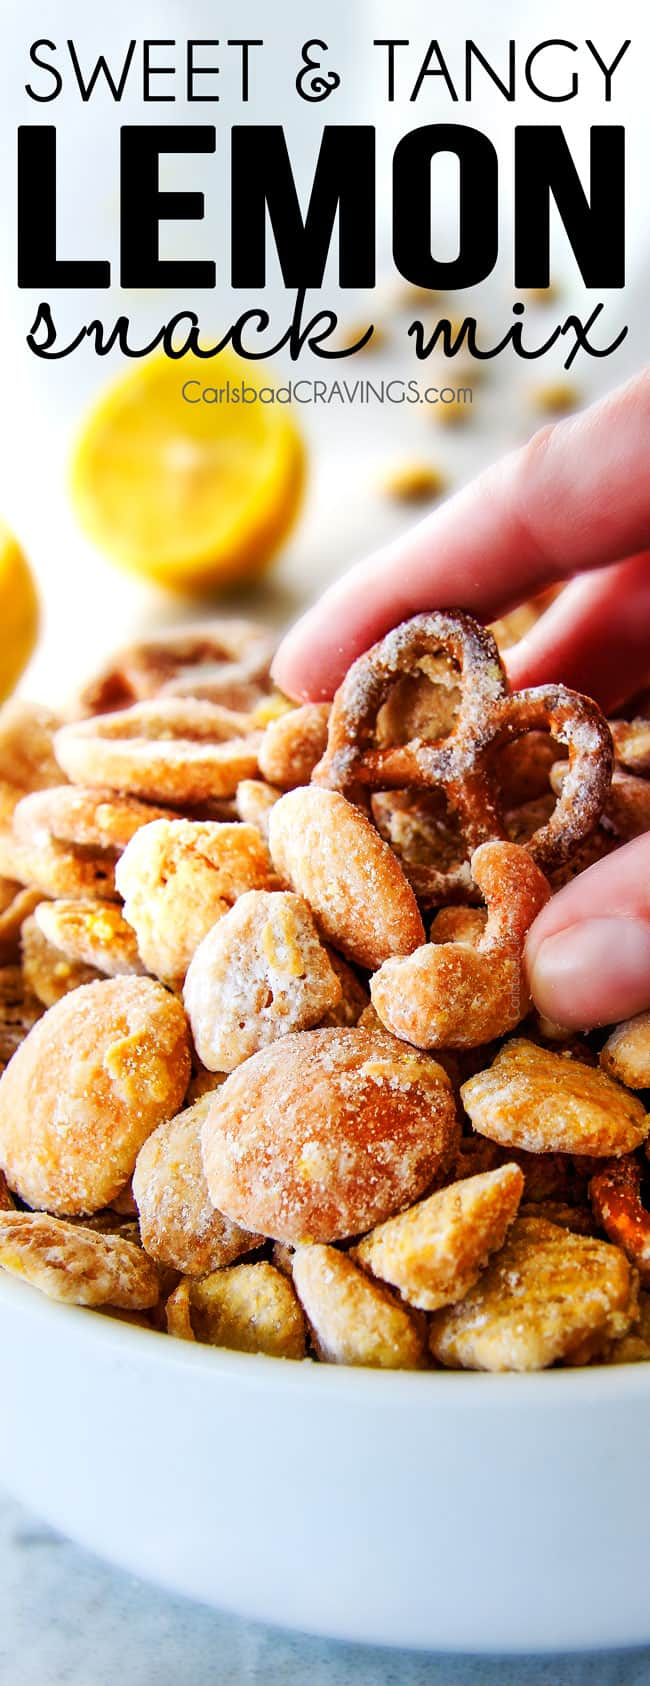 Everyone begs me to bring this seriously addicting Lemon Snack Mix to every party and get together!  Its super easy, make ahead,sweet and tangy andcoated in AMAZING White Chocolate Lemon Glaze! Your friends will love it!